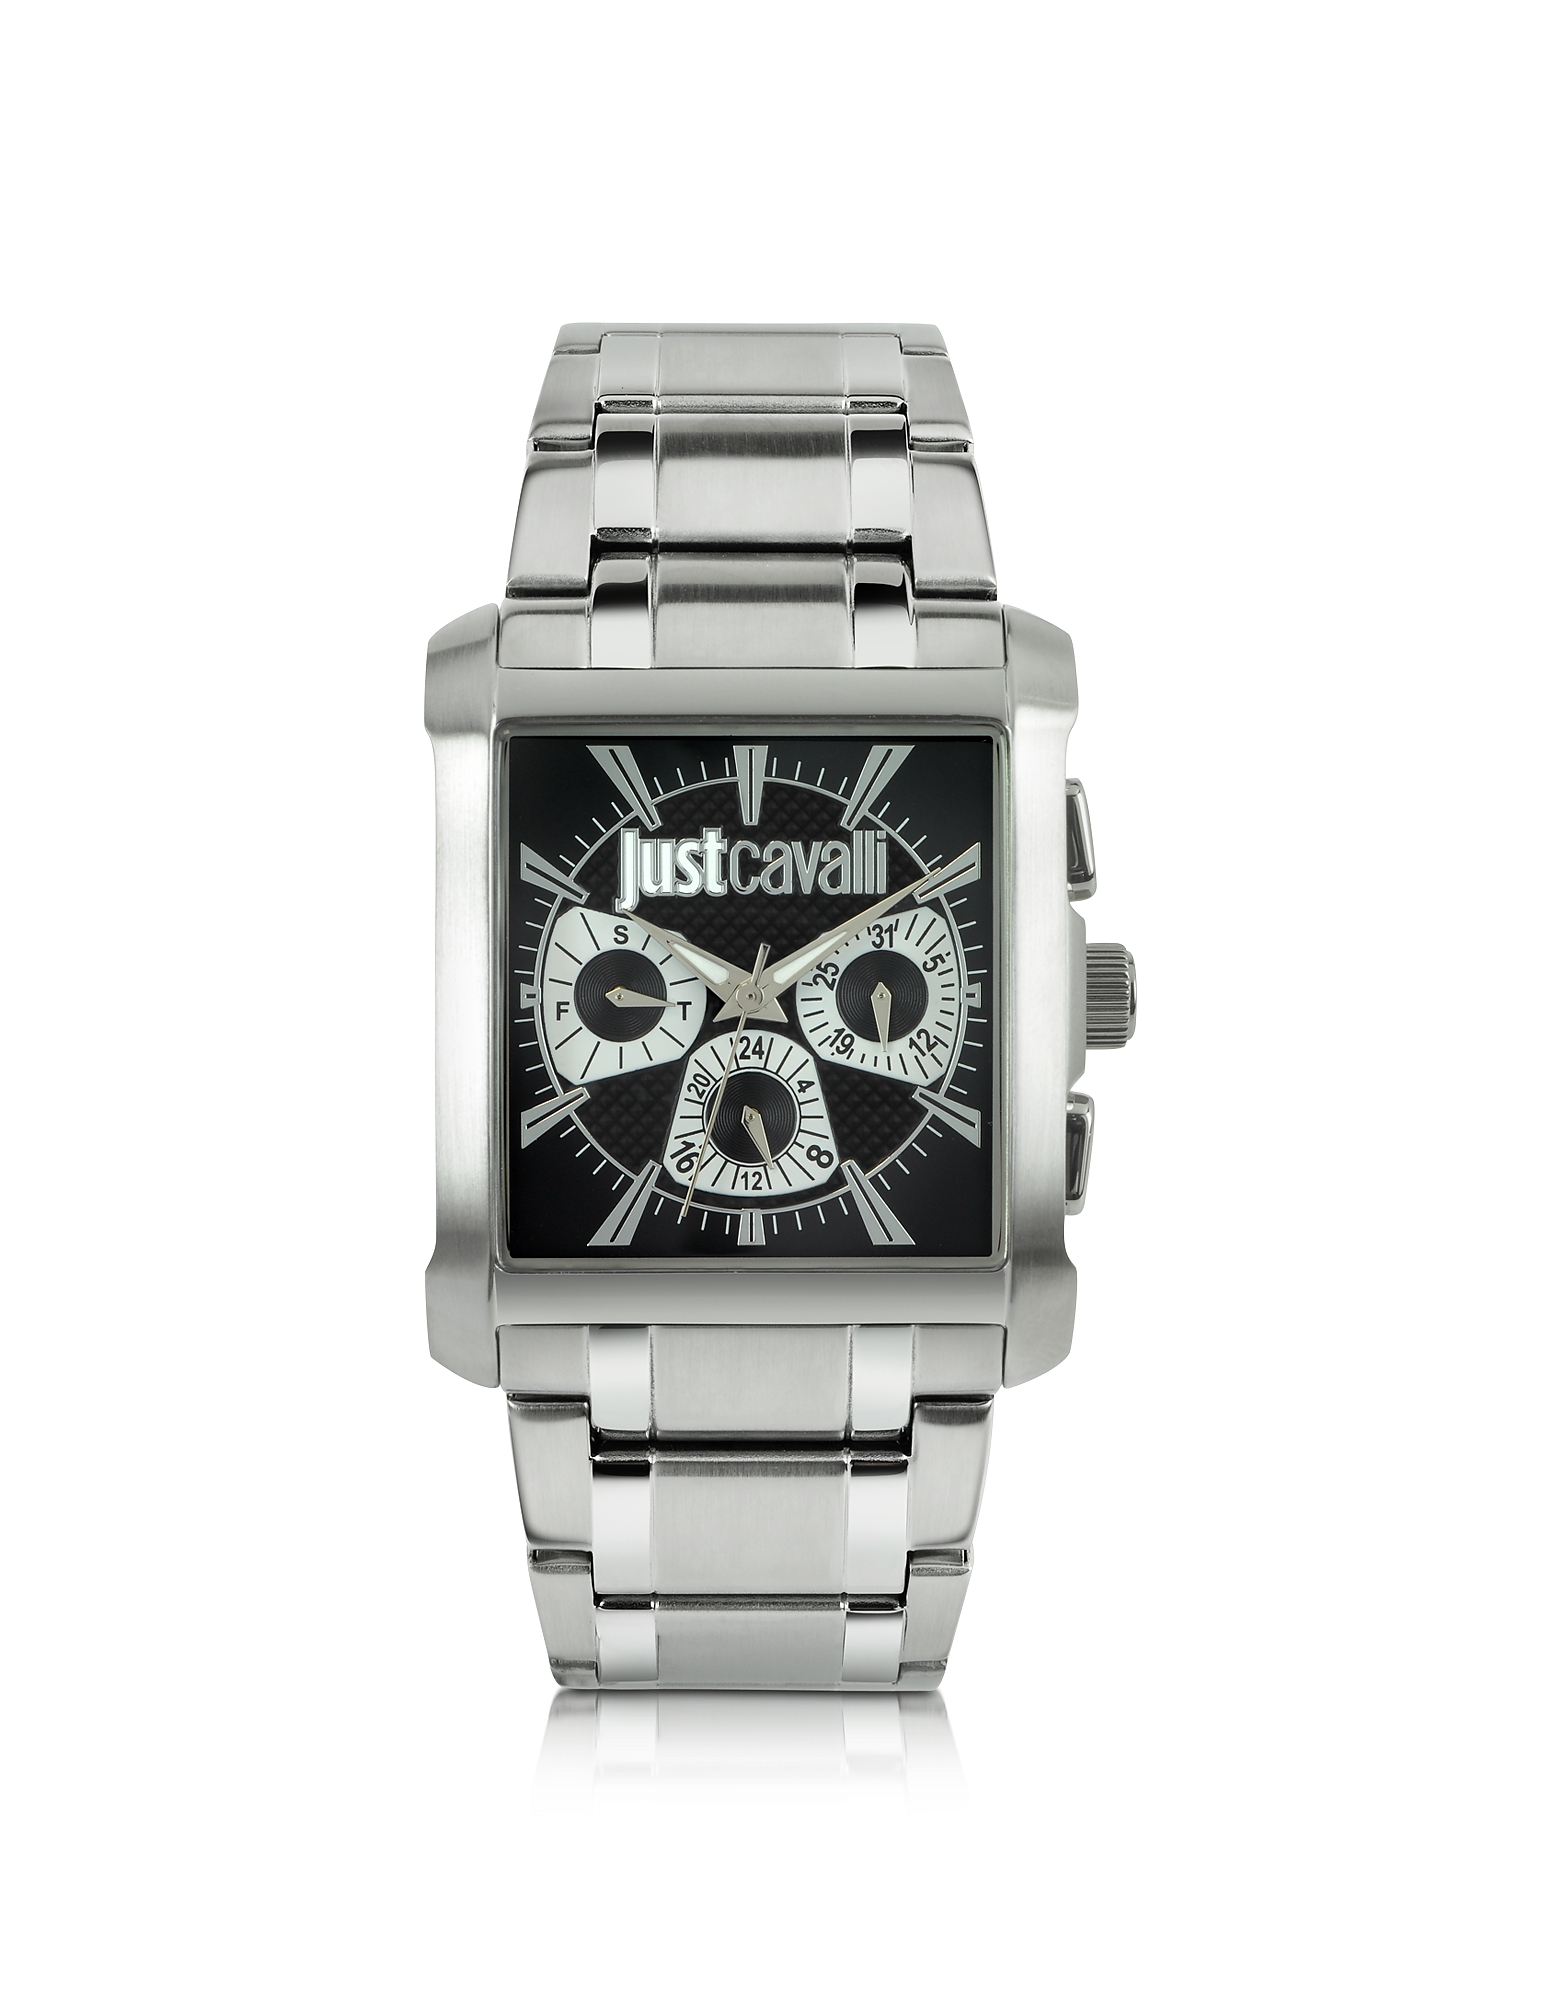 Image of Just Cavalli Designer Men's Watches, Rude Collection Stainless Steel Watch